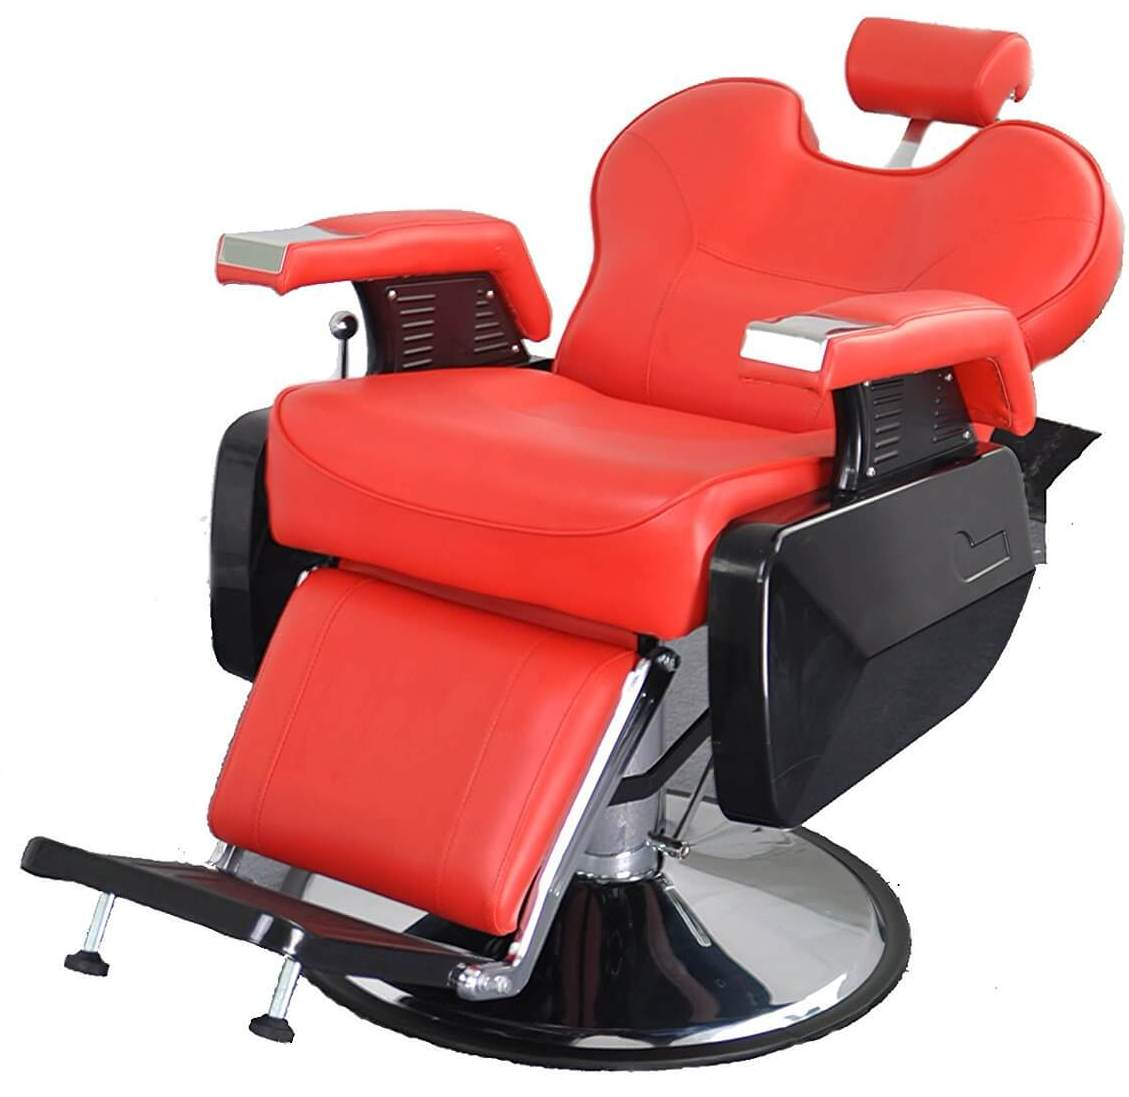 ez chair barber cheap folding chairs walmart red  hydraulic reclining and heavy duty